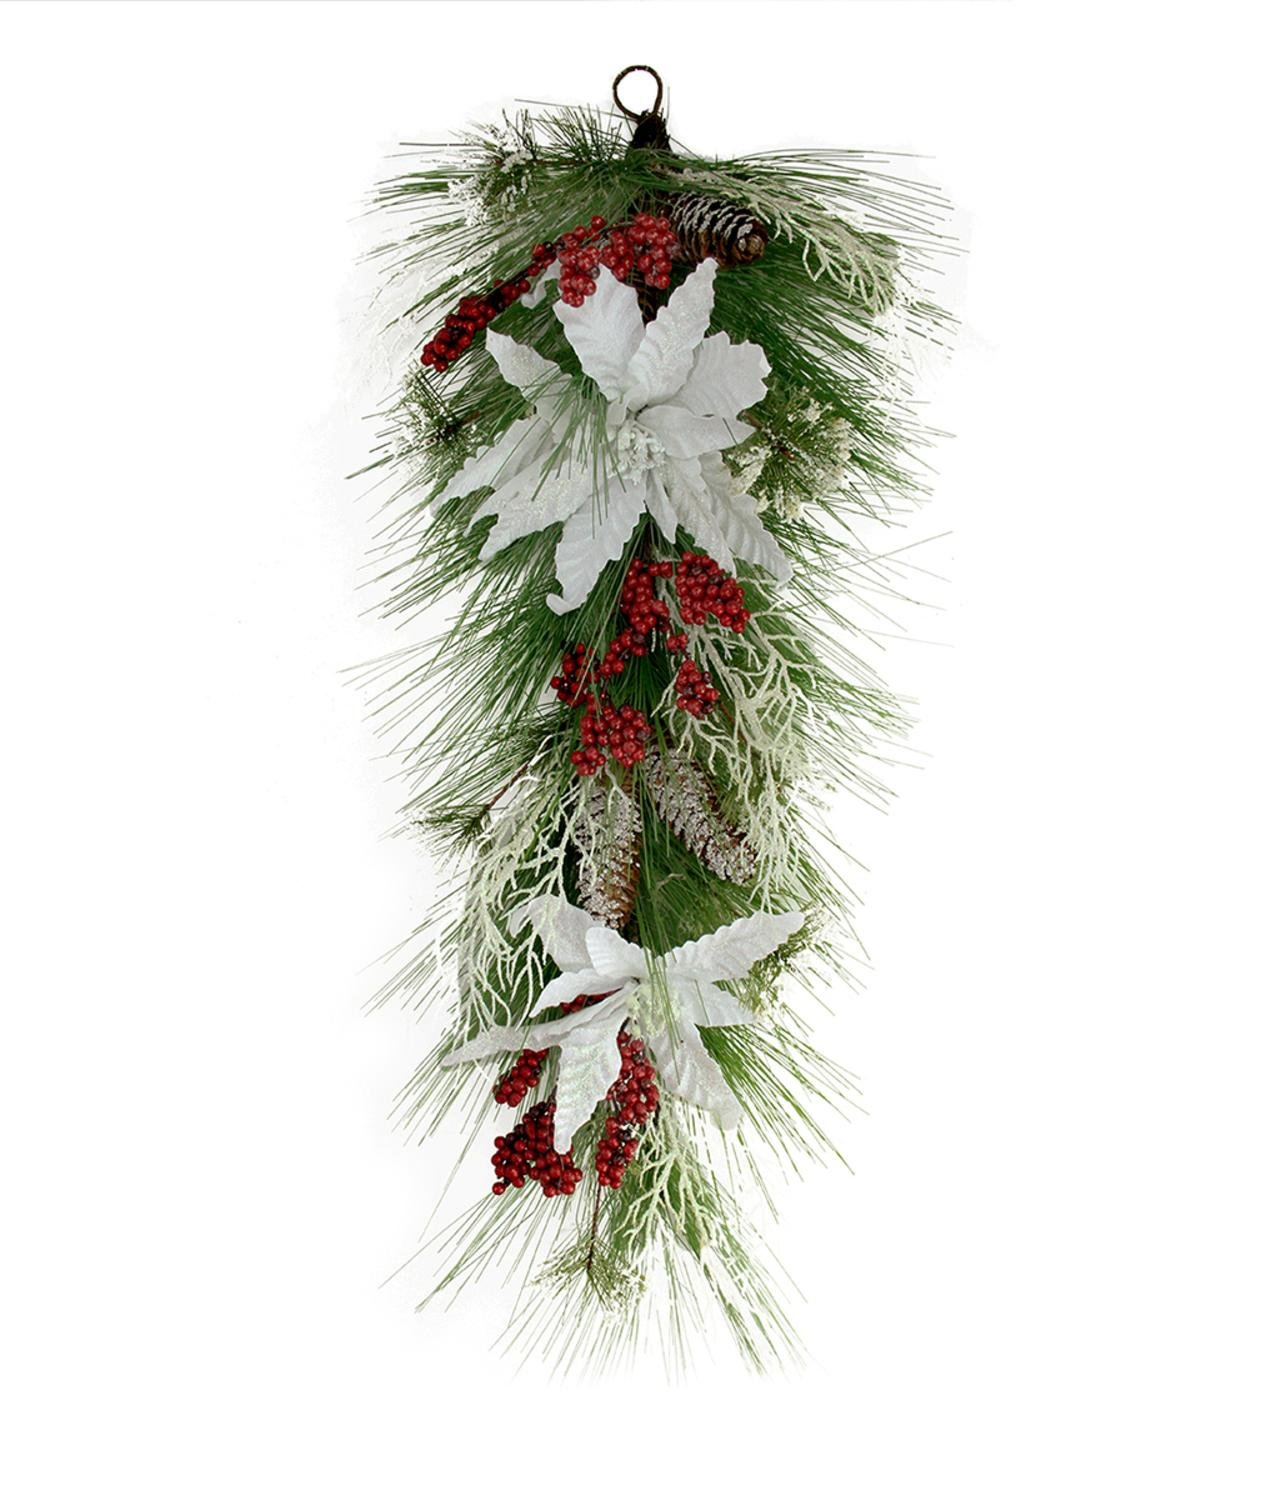 Northlight 32'' Mixed Long Needle Pine with Berries and Poinsettia's Artificial Christmas Teardrop Swag-Unlit, Green